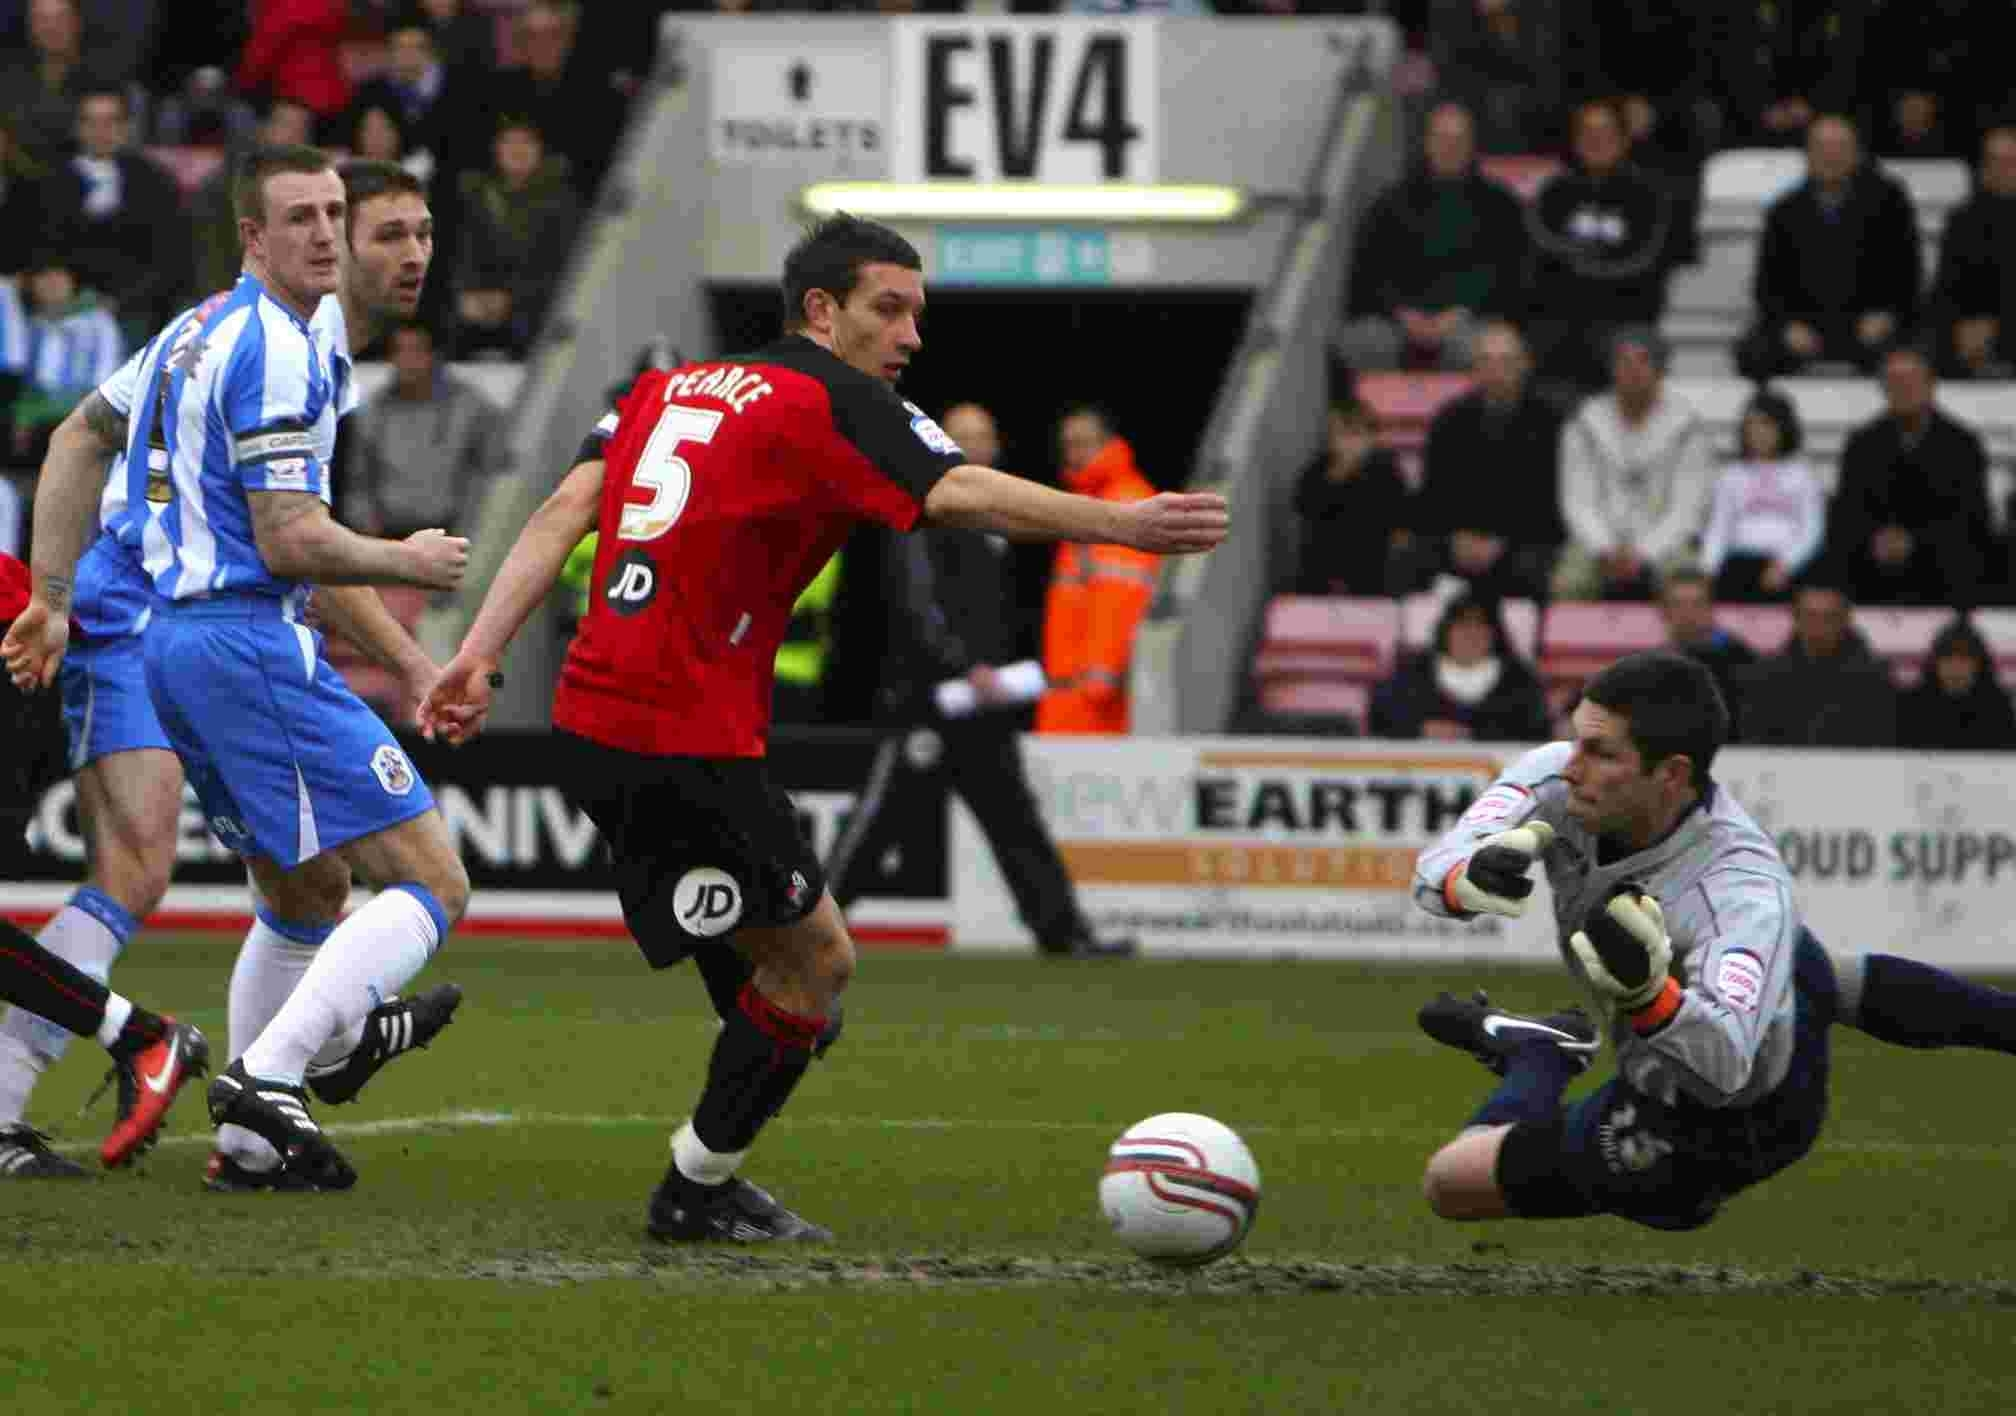 Former AFC Bournemouth captain Jason Pearce seeks play-off glory, 10 years on from one of his greatest triumphs